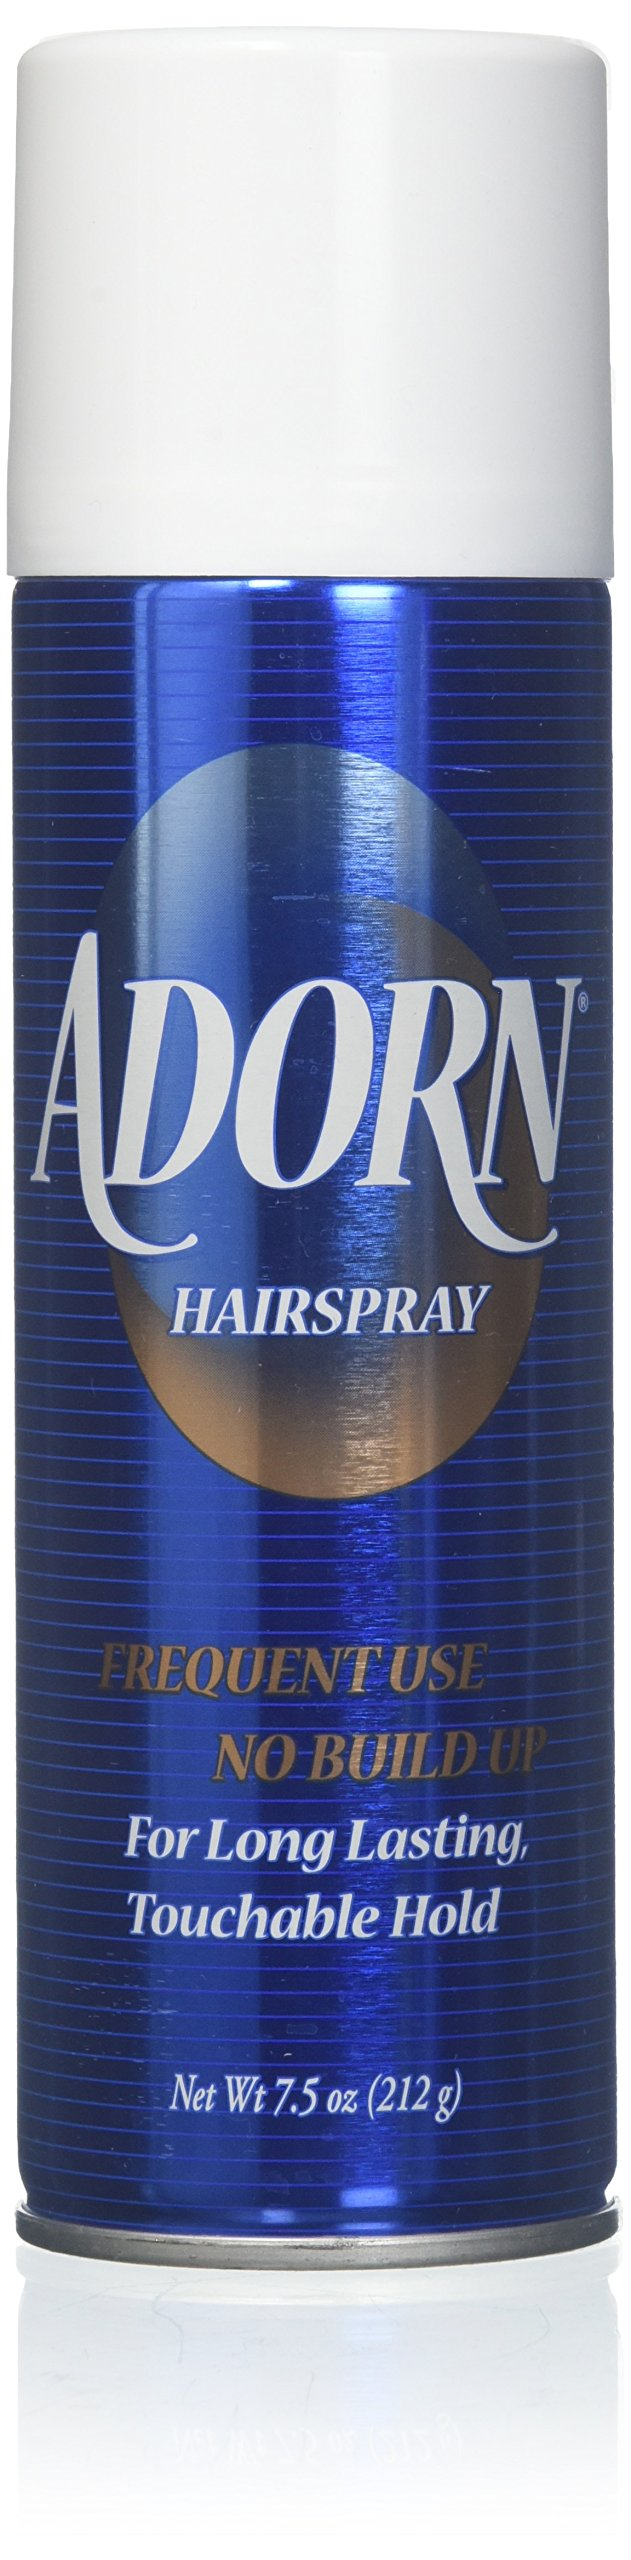 Adorn Touchable Hold Hairspray 75 Ounce 221ml